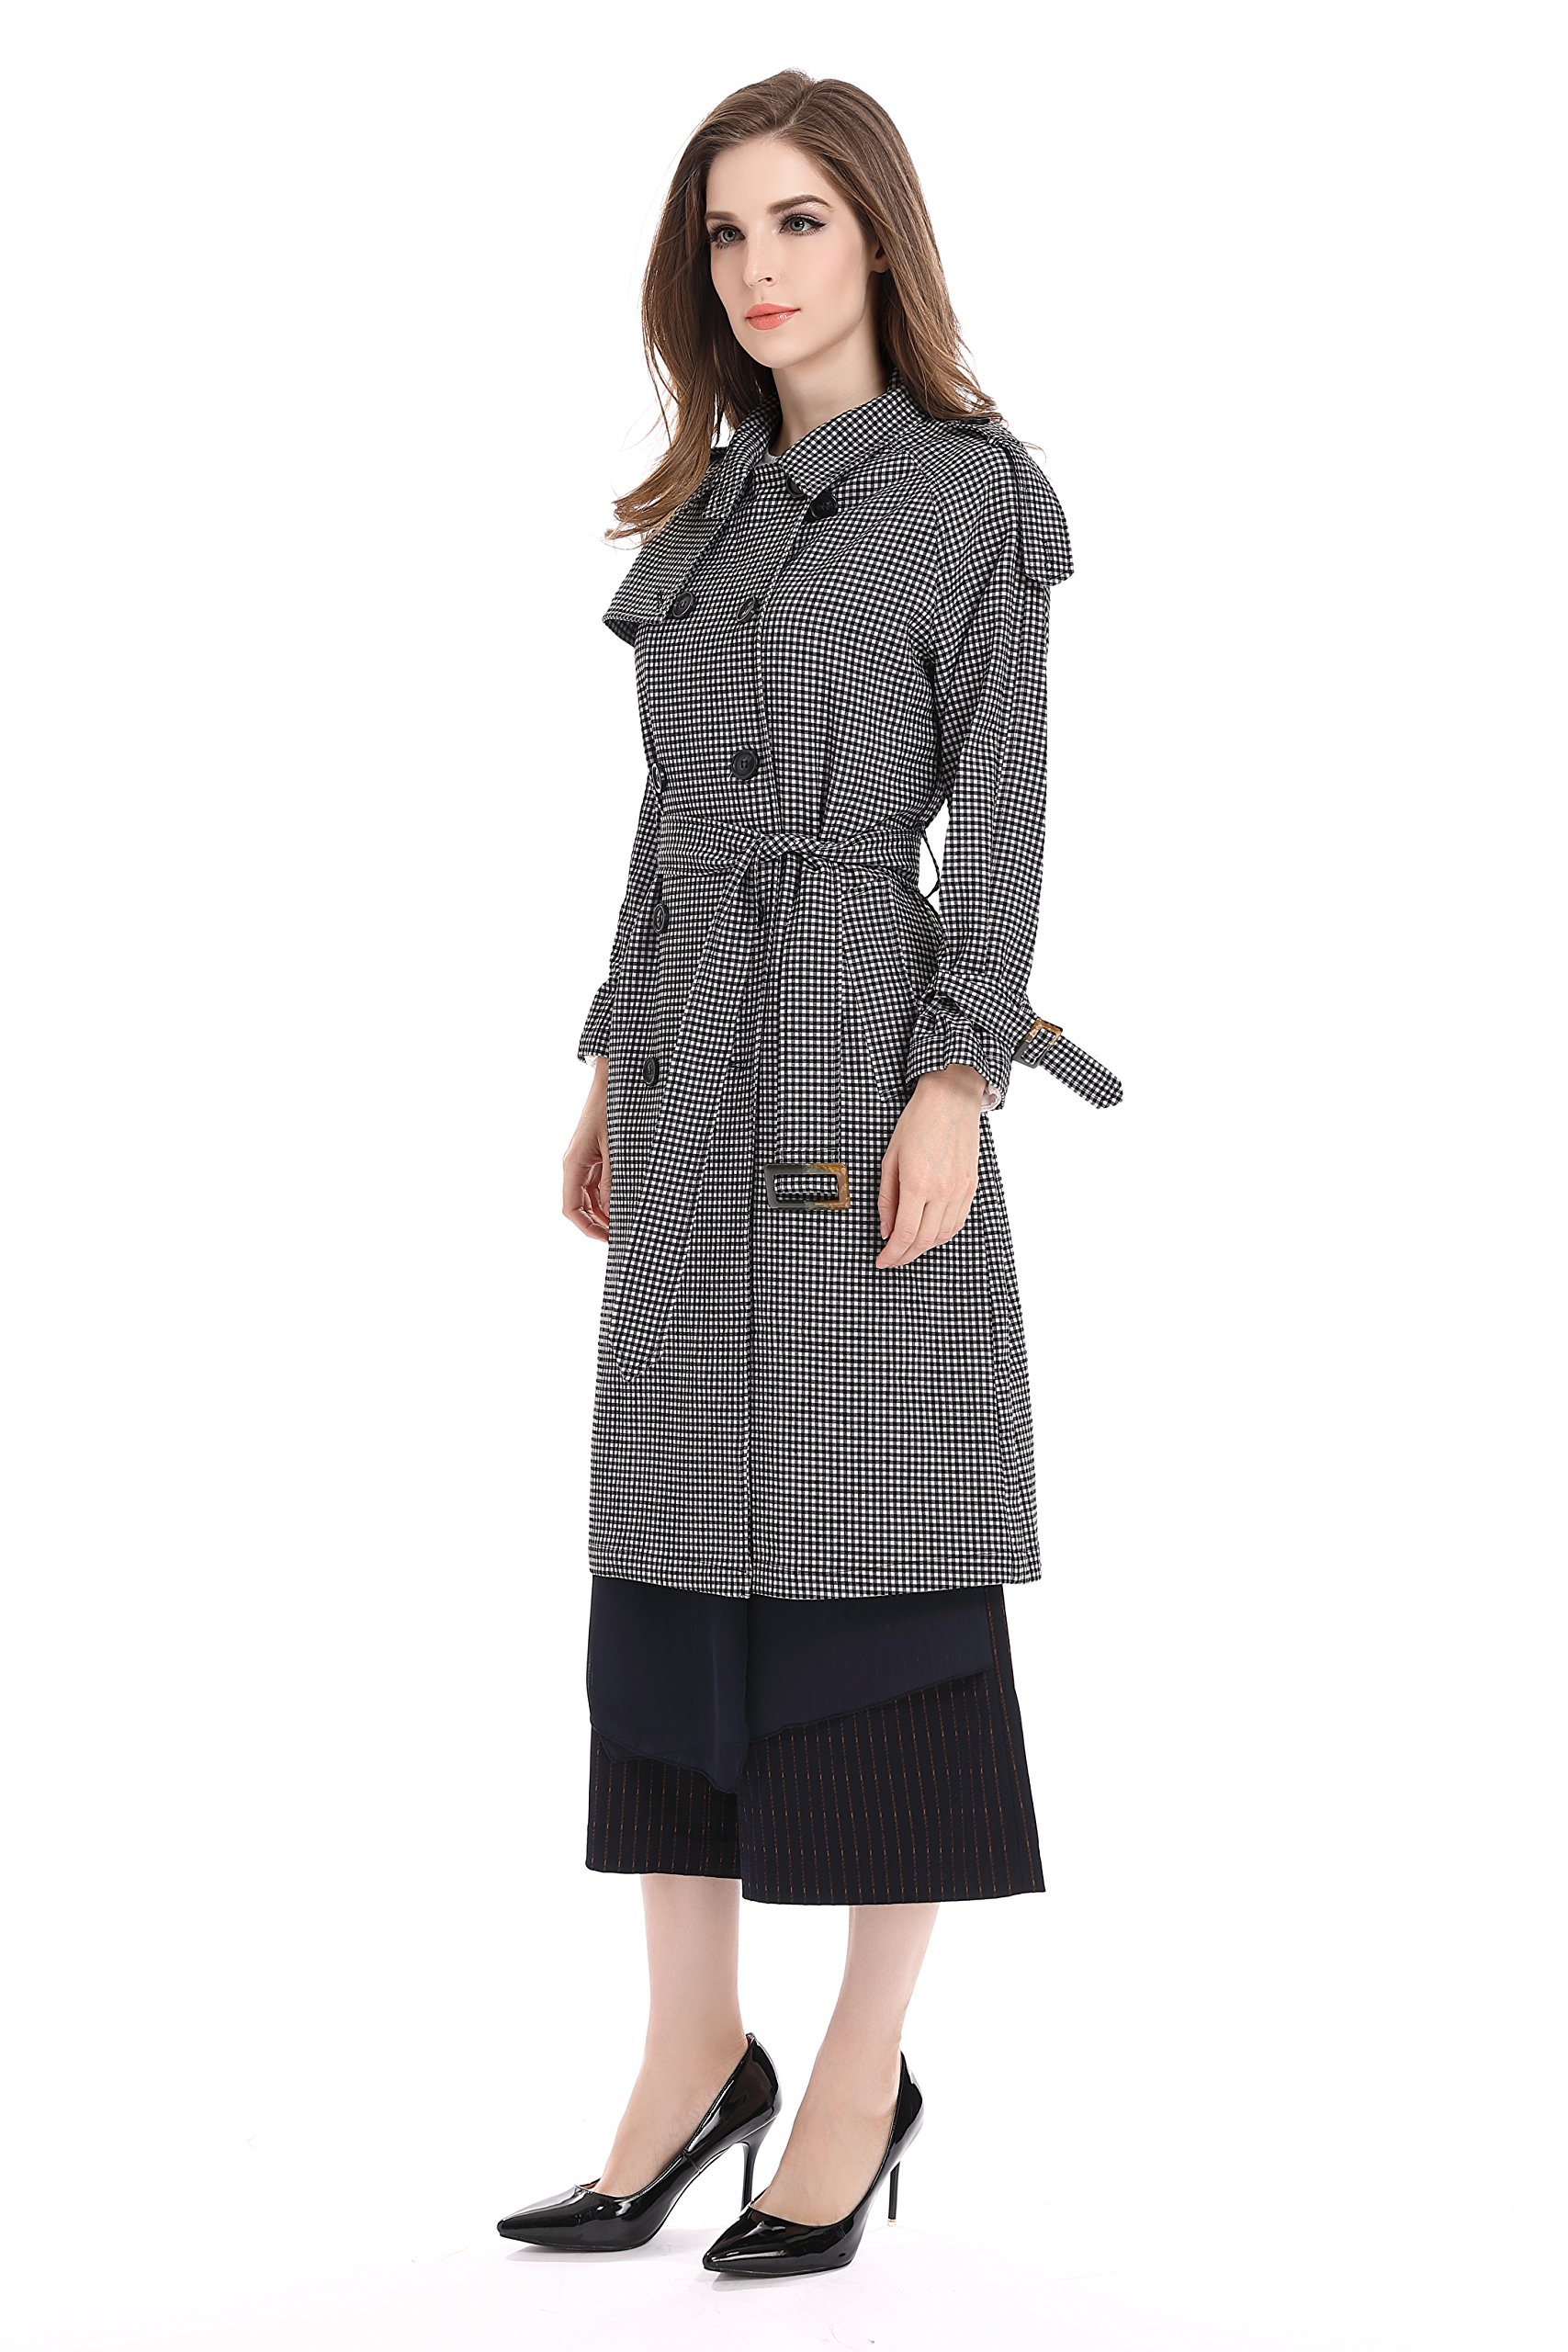 Bluemary Women's Fashion Fine Plaid Long Trench Coat With a Belt (medium, Greyish White)